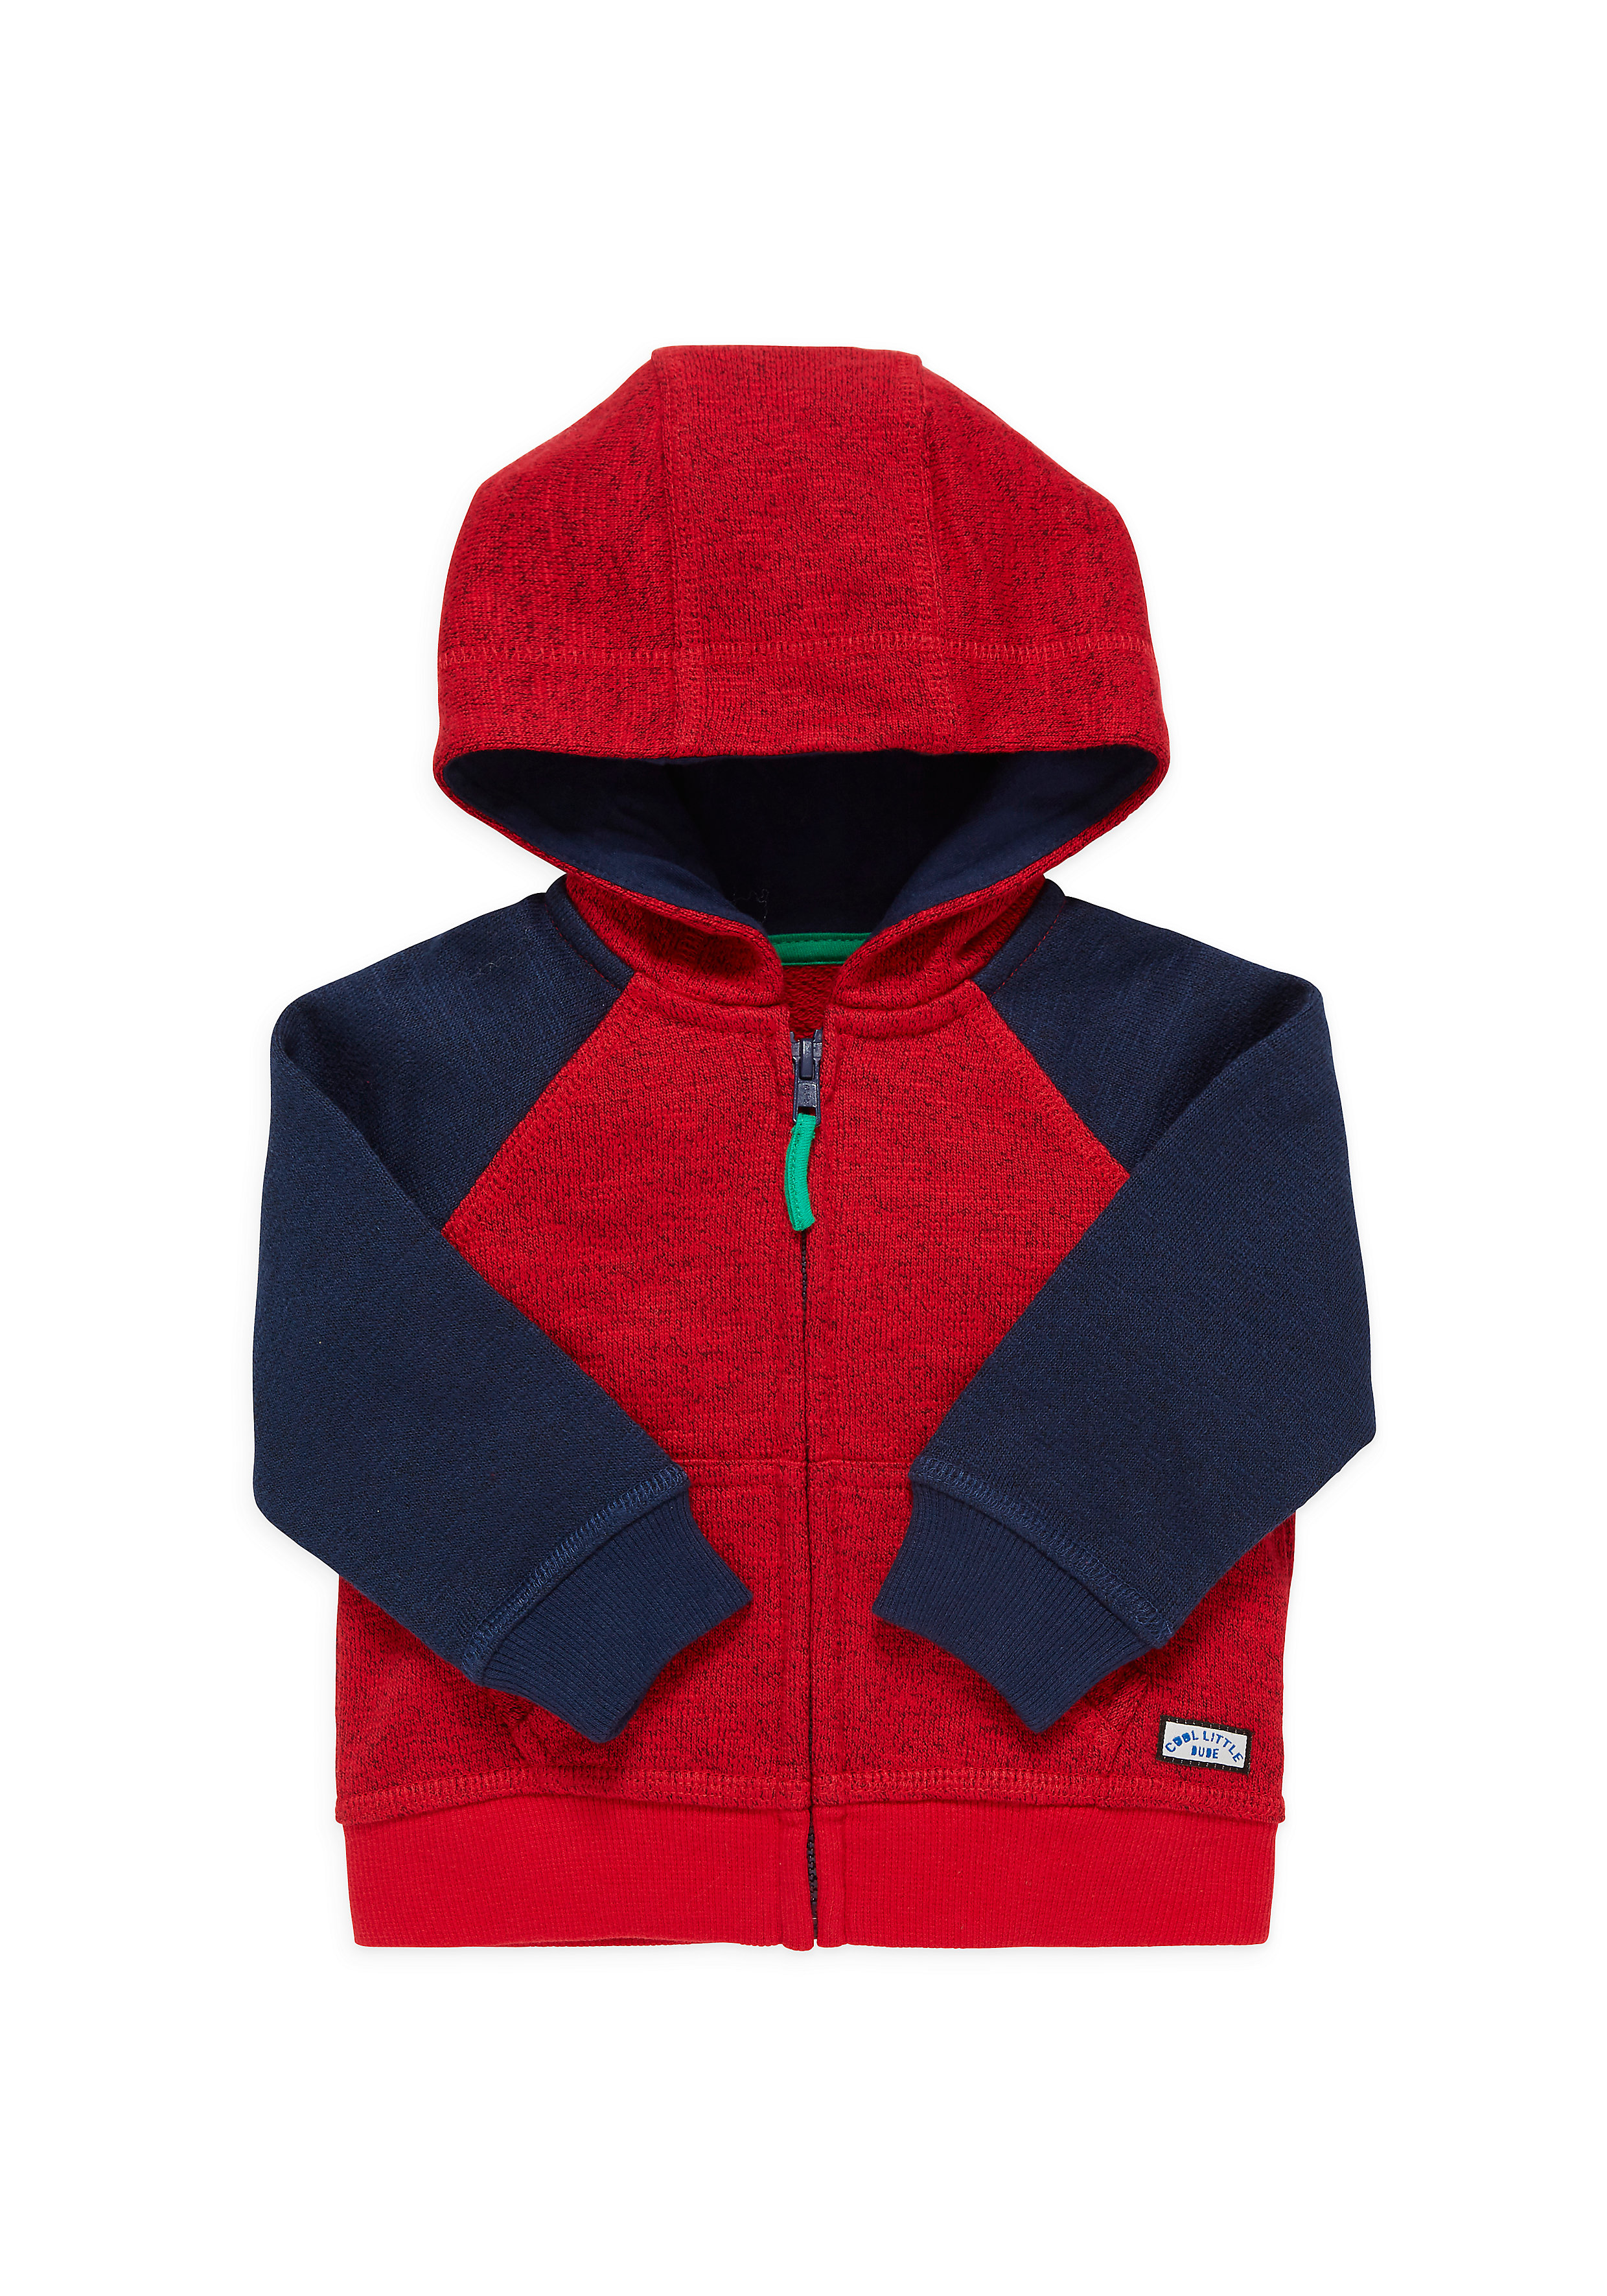 Mothercare | Boys Hoodie  - Red